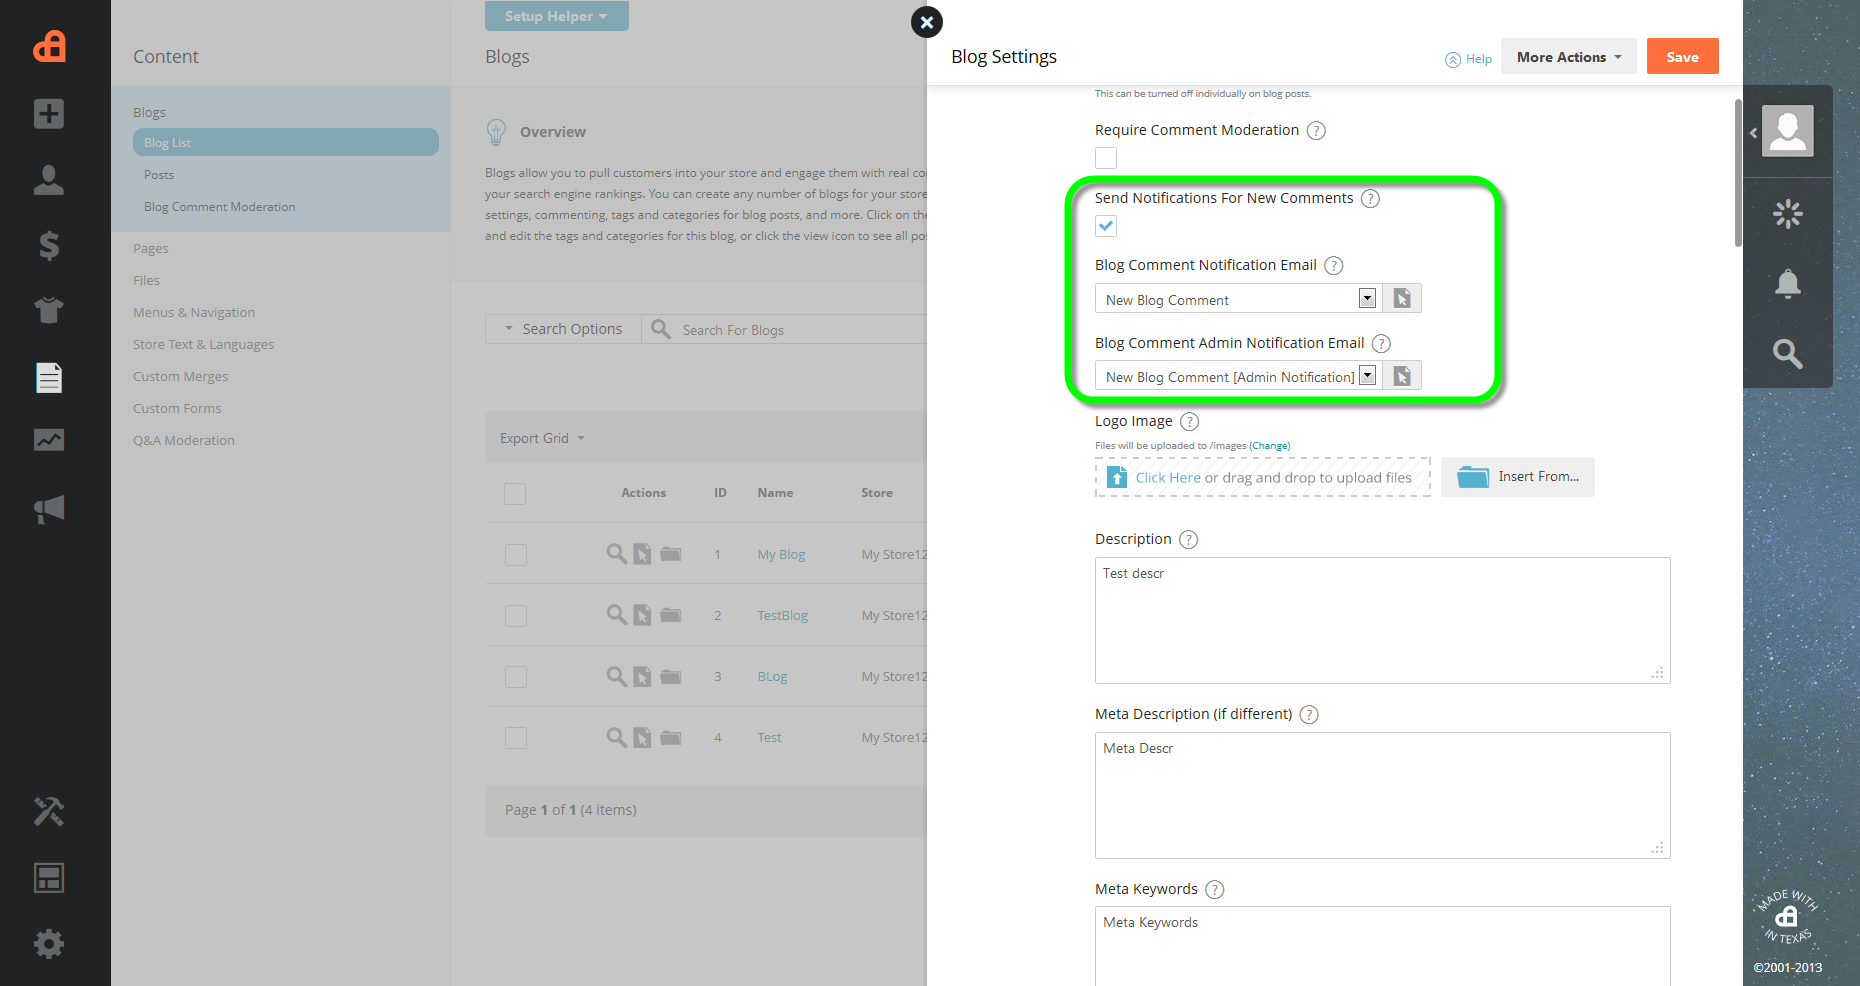 FEATURE: 2013 5 - Blog commenting notification – Knowledge Center